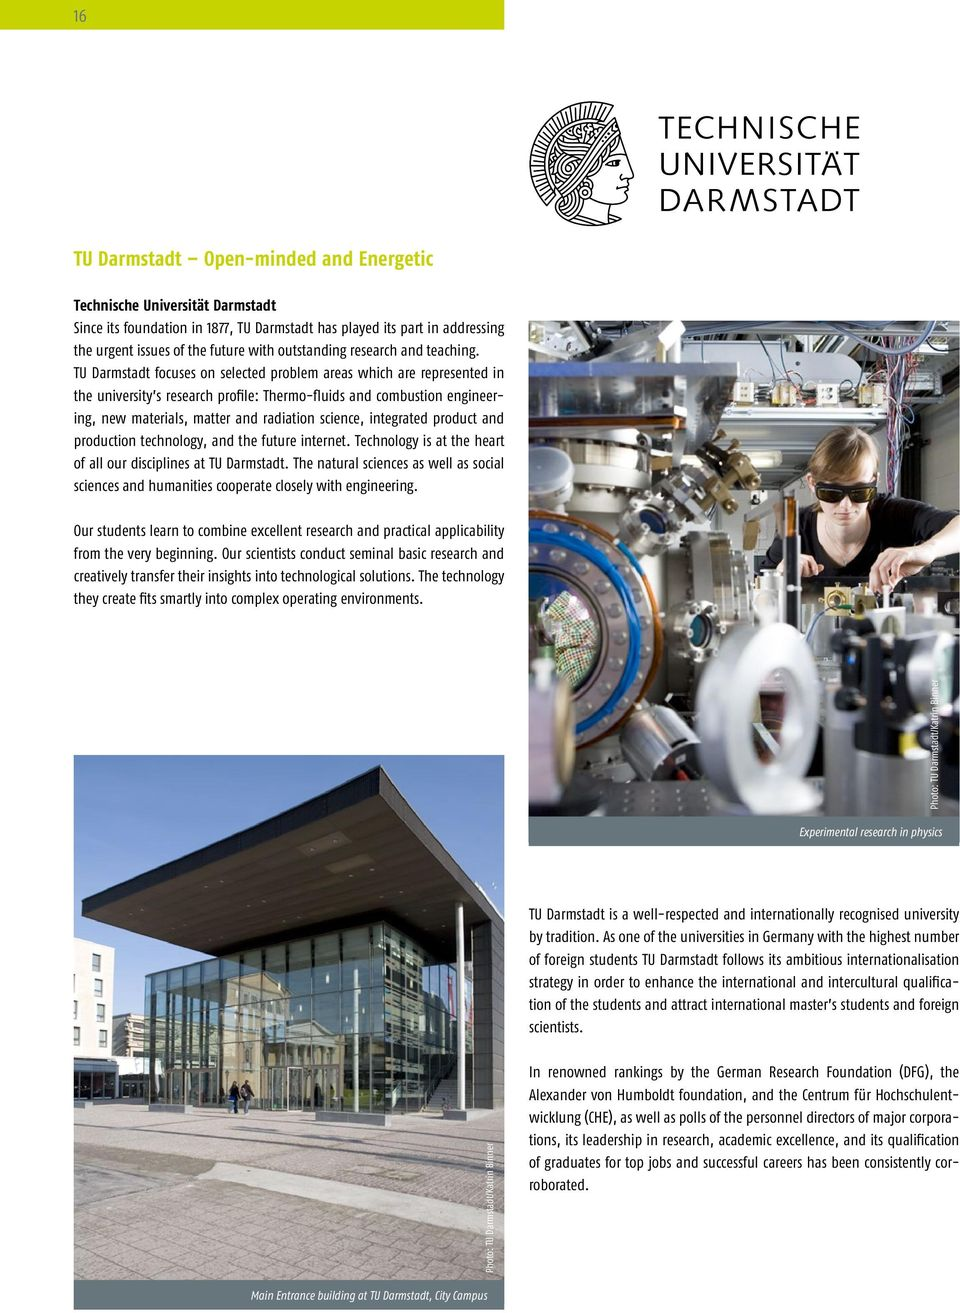 TU Darmstadt focuses on selected problem areas which are represented in the university s research profile: Thermo-fluids and combustion engineering, new materials, matter and radiation science,